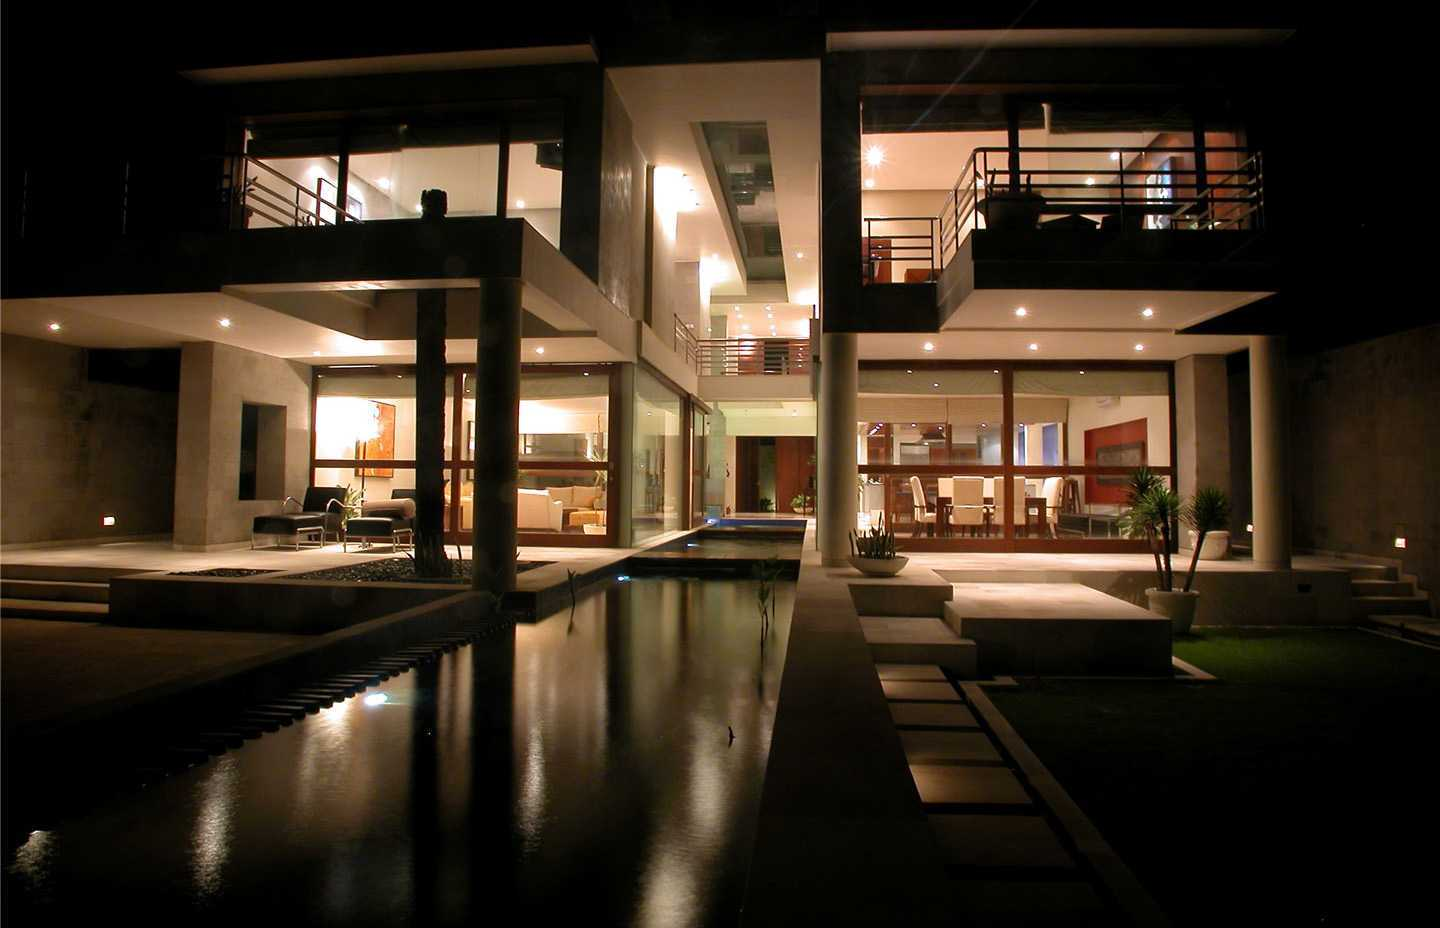 Agung Budi Raharsa | Architecture & Engineering Shark House - Bali Bali, Indonesia Ketewel, Bali Night  View  12480